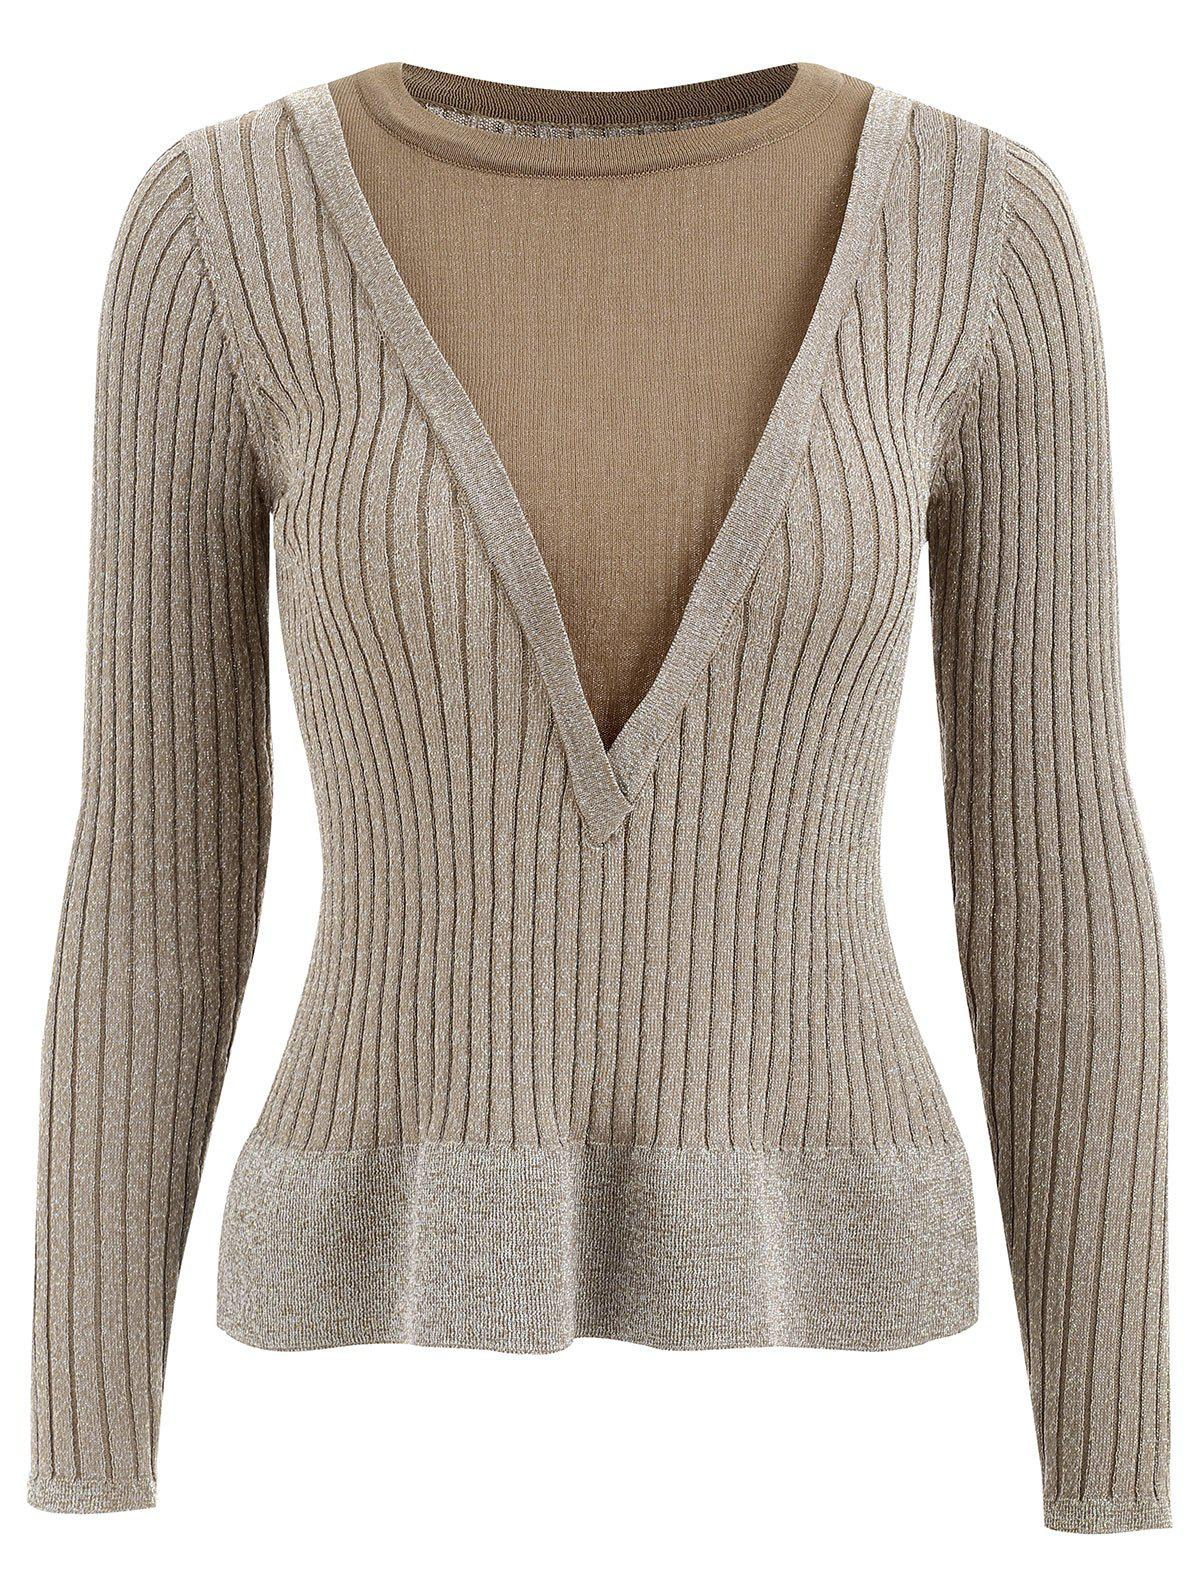 Faux Twinset Fitted Knitwear - YELLOW L